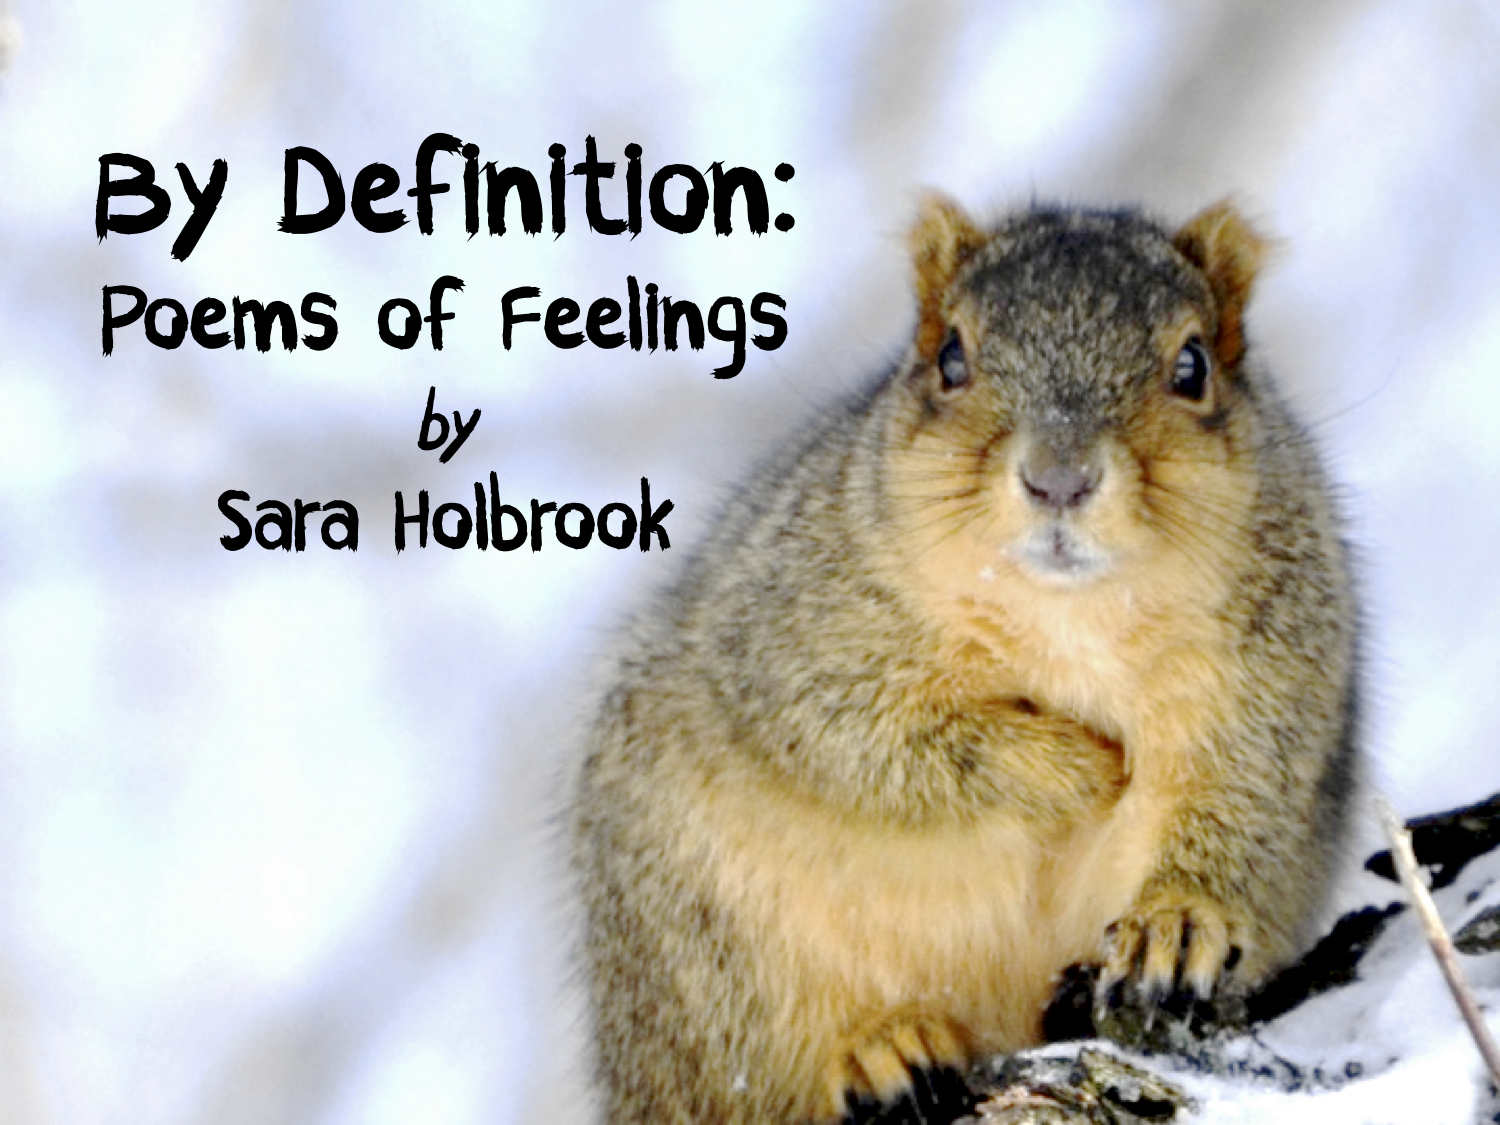 http://www.teacherspayteachers.com/Product/By-Definition-A-Heads-Up-book-by-Sara-Holbrook-1475655